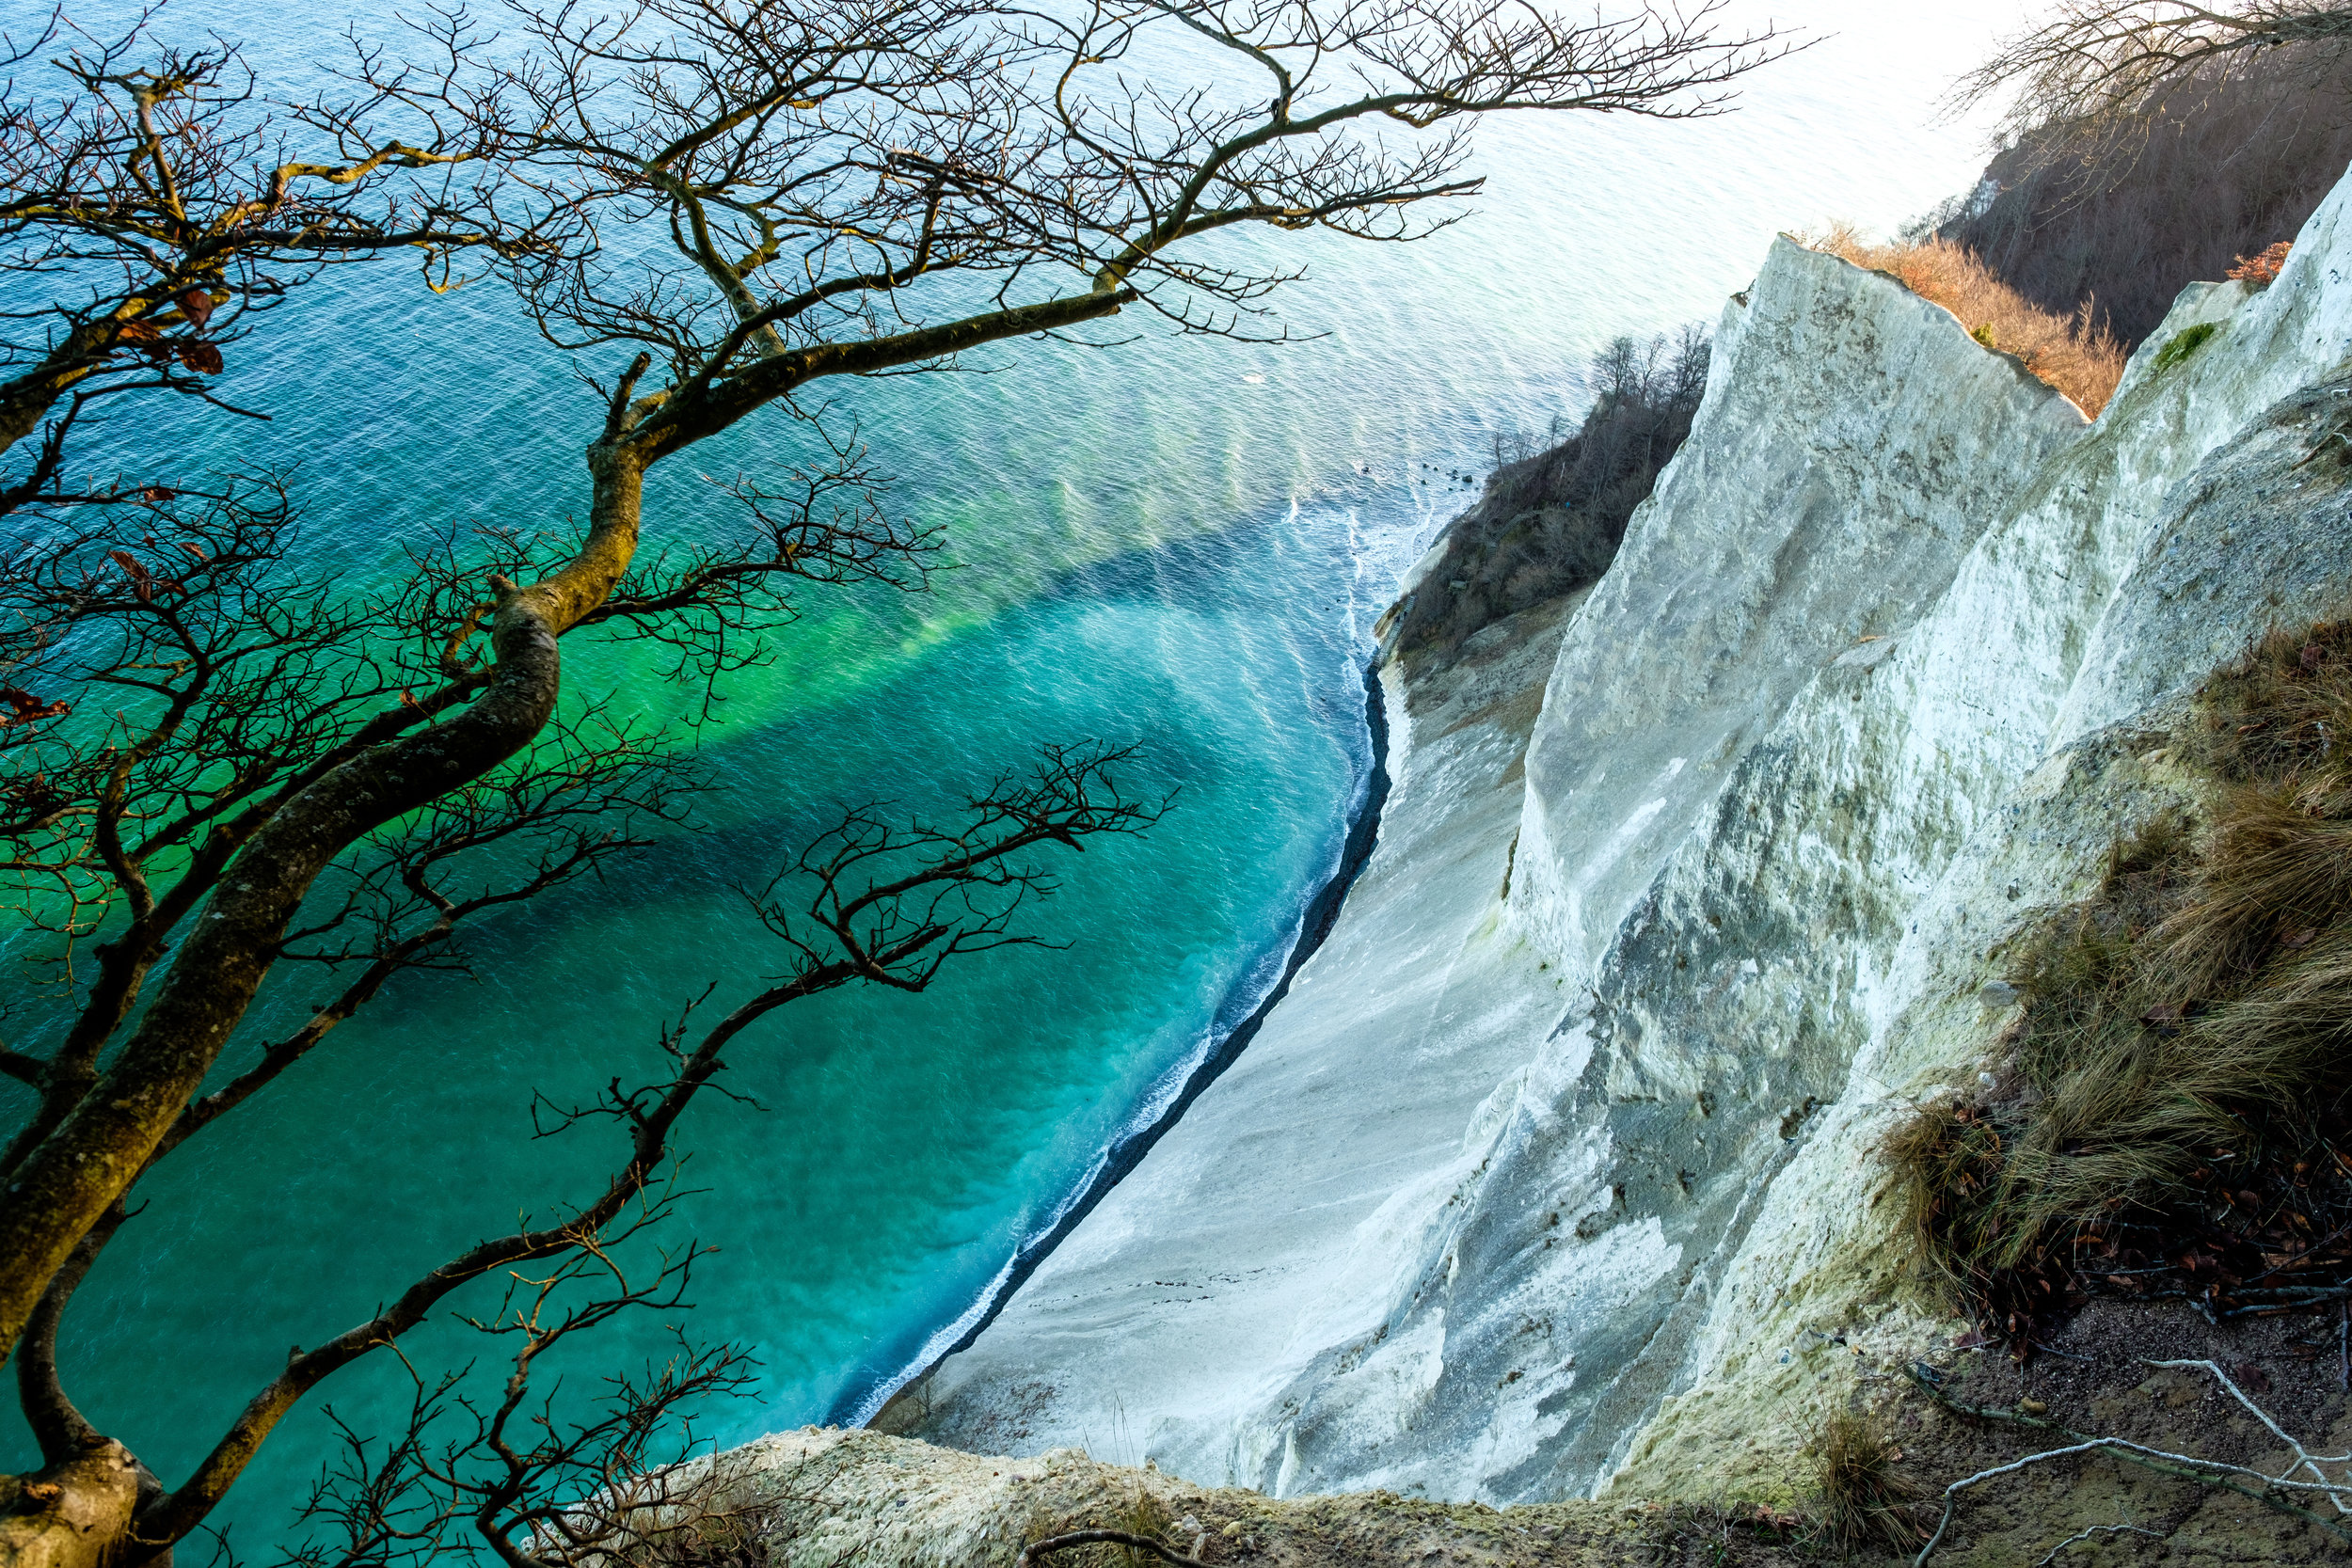 The trees and steep Cliffs of Moen, Møns Klint, and the green Baltic Sea below in Denmark